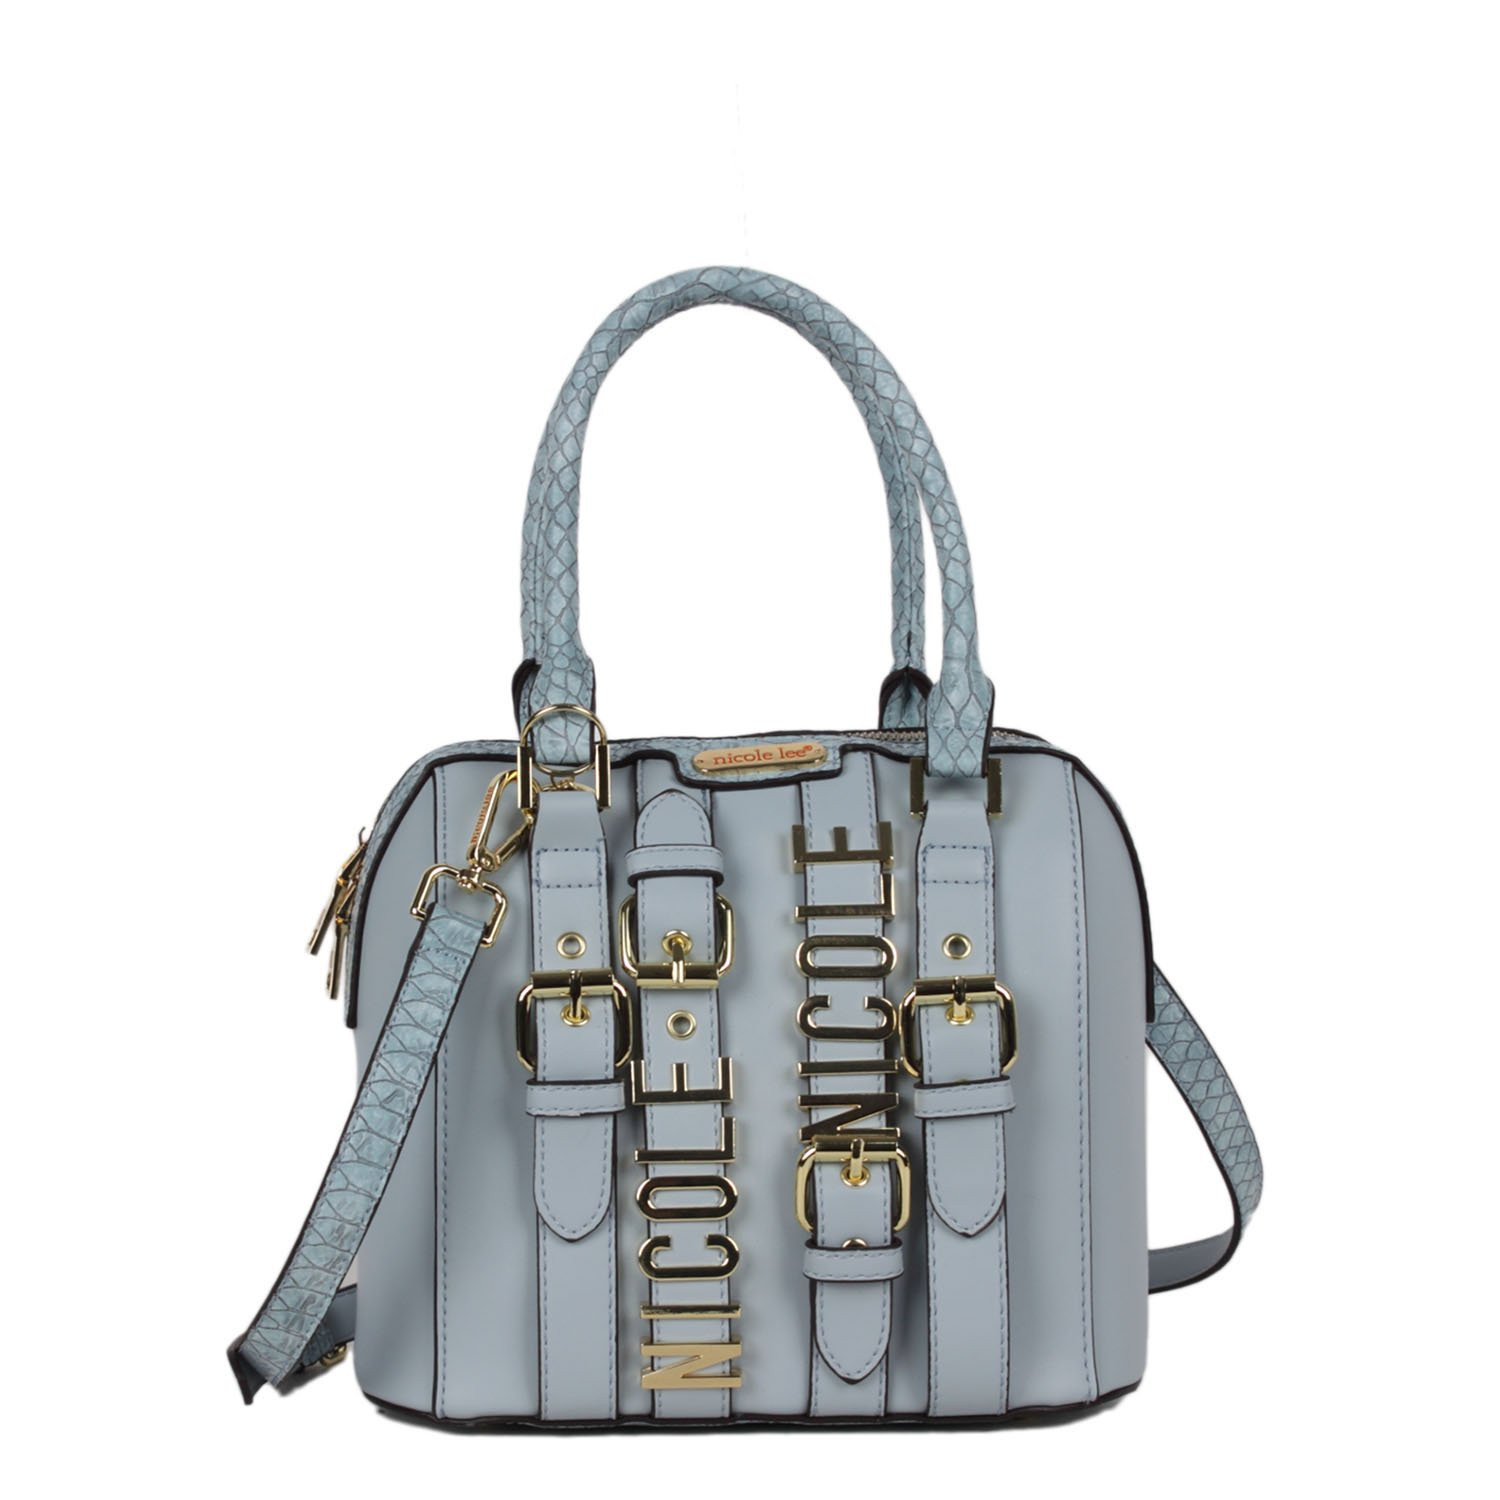 Belt Embellish and Faux Croc Detail  Blue  Nicole Lee Dome Bag  Handbags   Amazon.com ea418197b5718